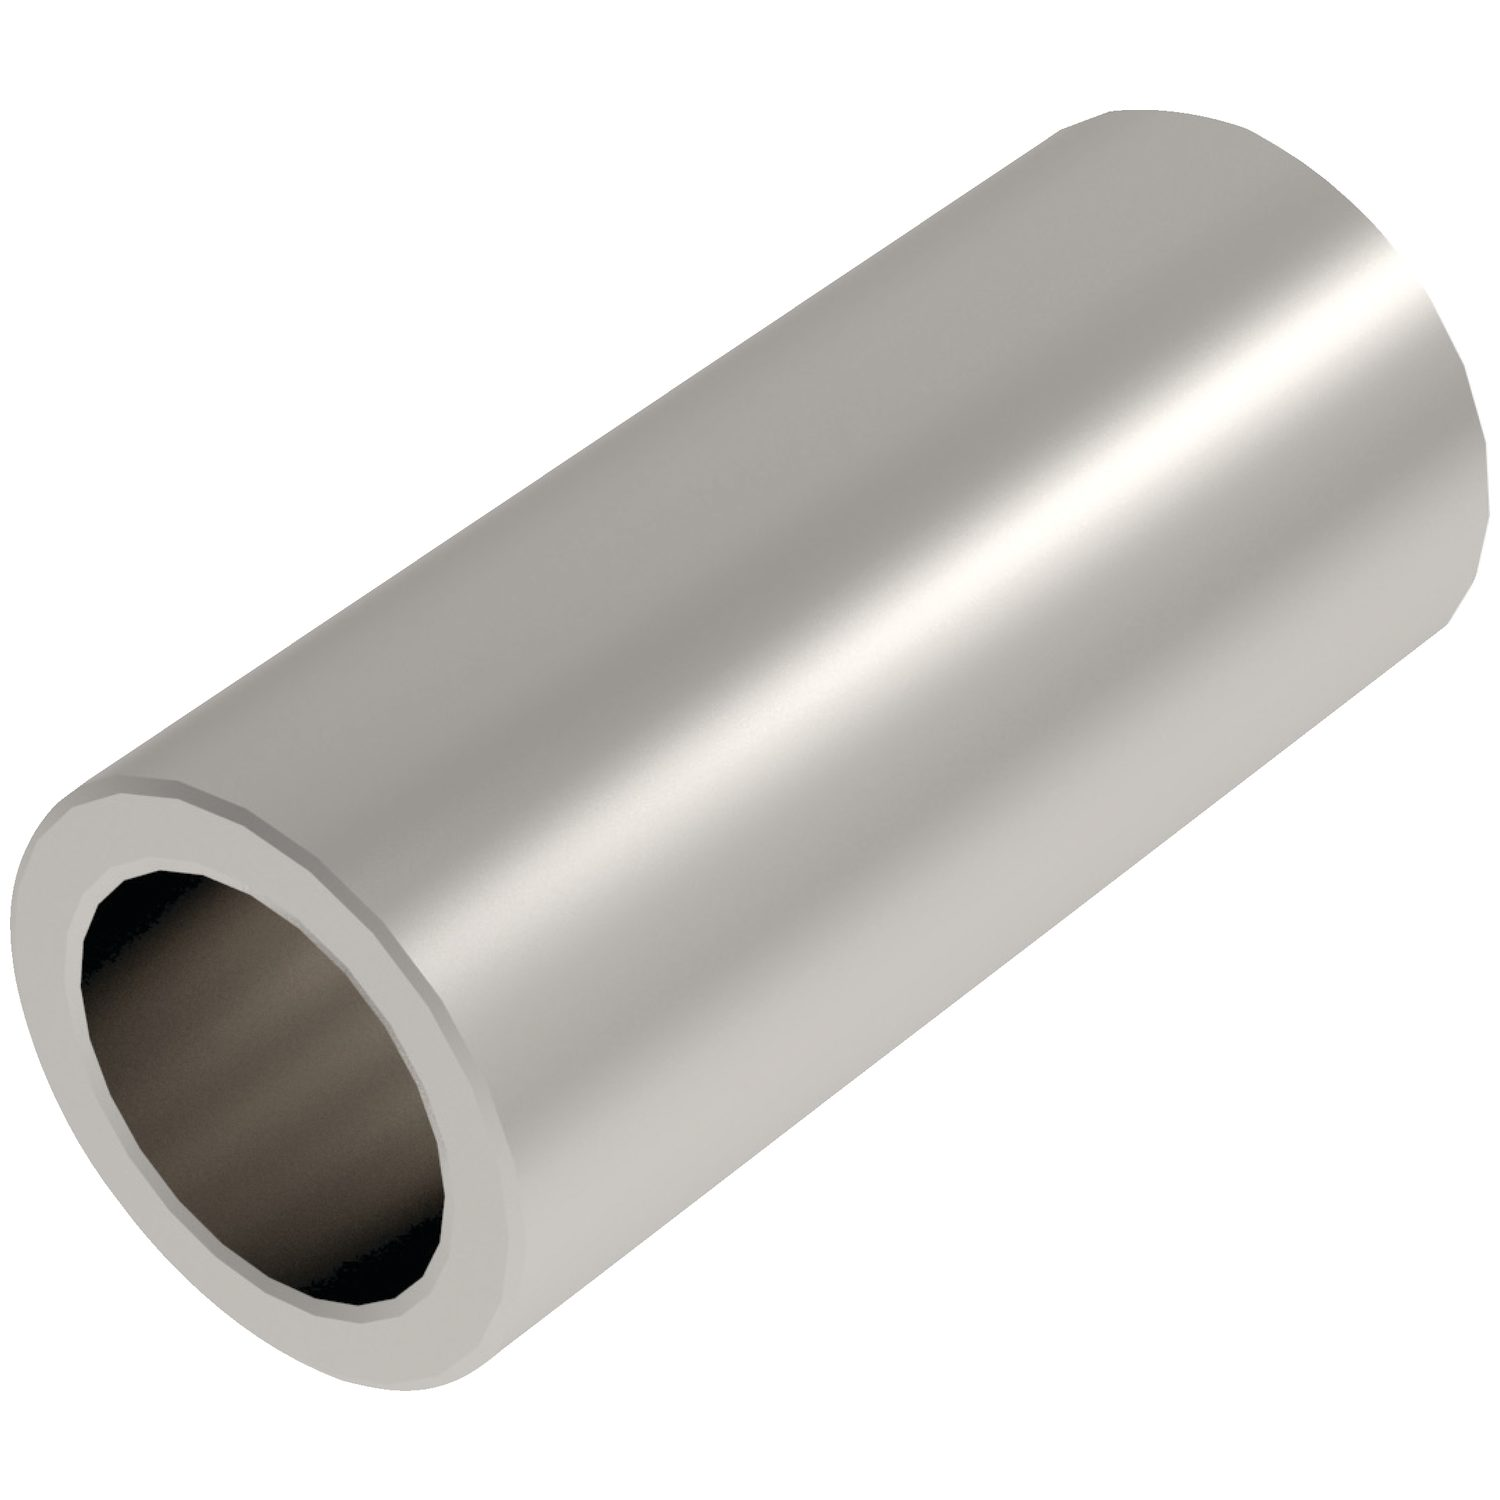 P1331 - Cylindrical Spacers - Stainless